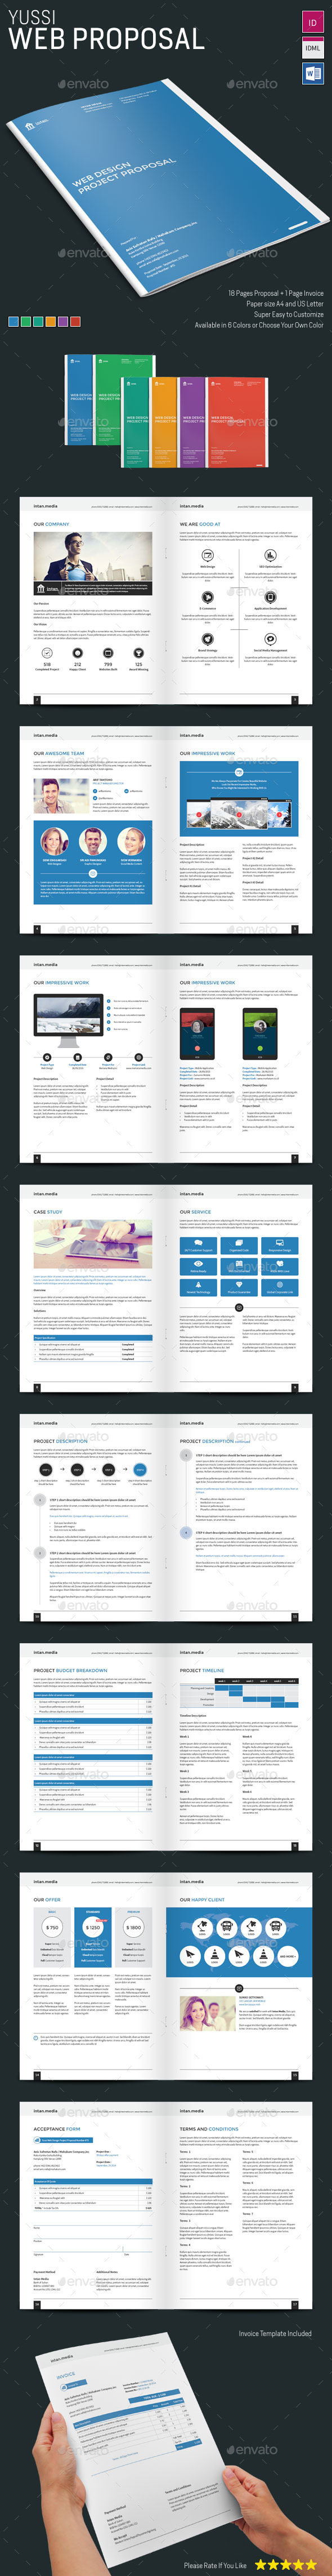 Yussi - Web Proposal - Proposals & Invoices Stationery